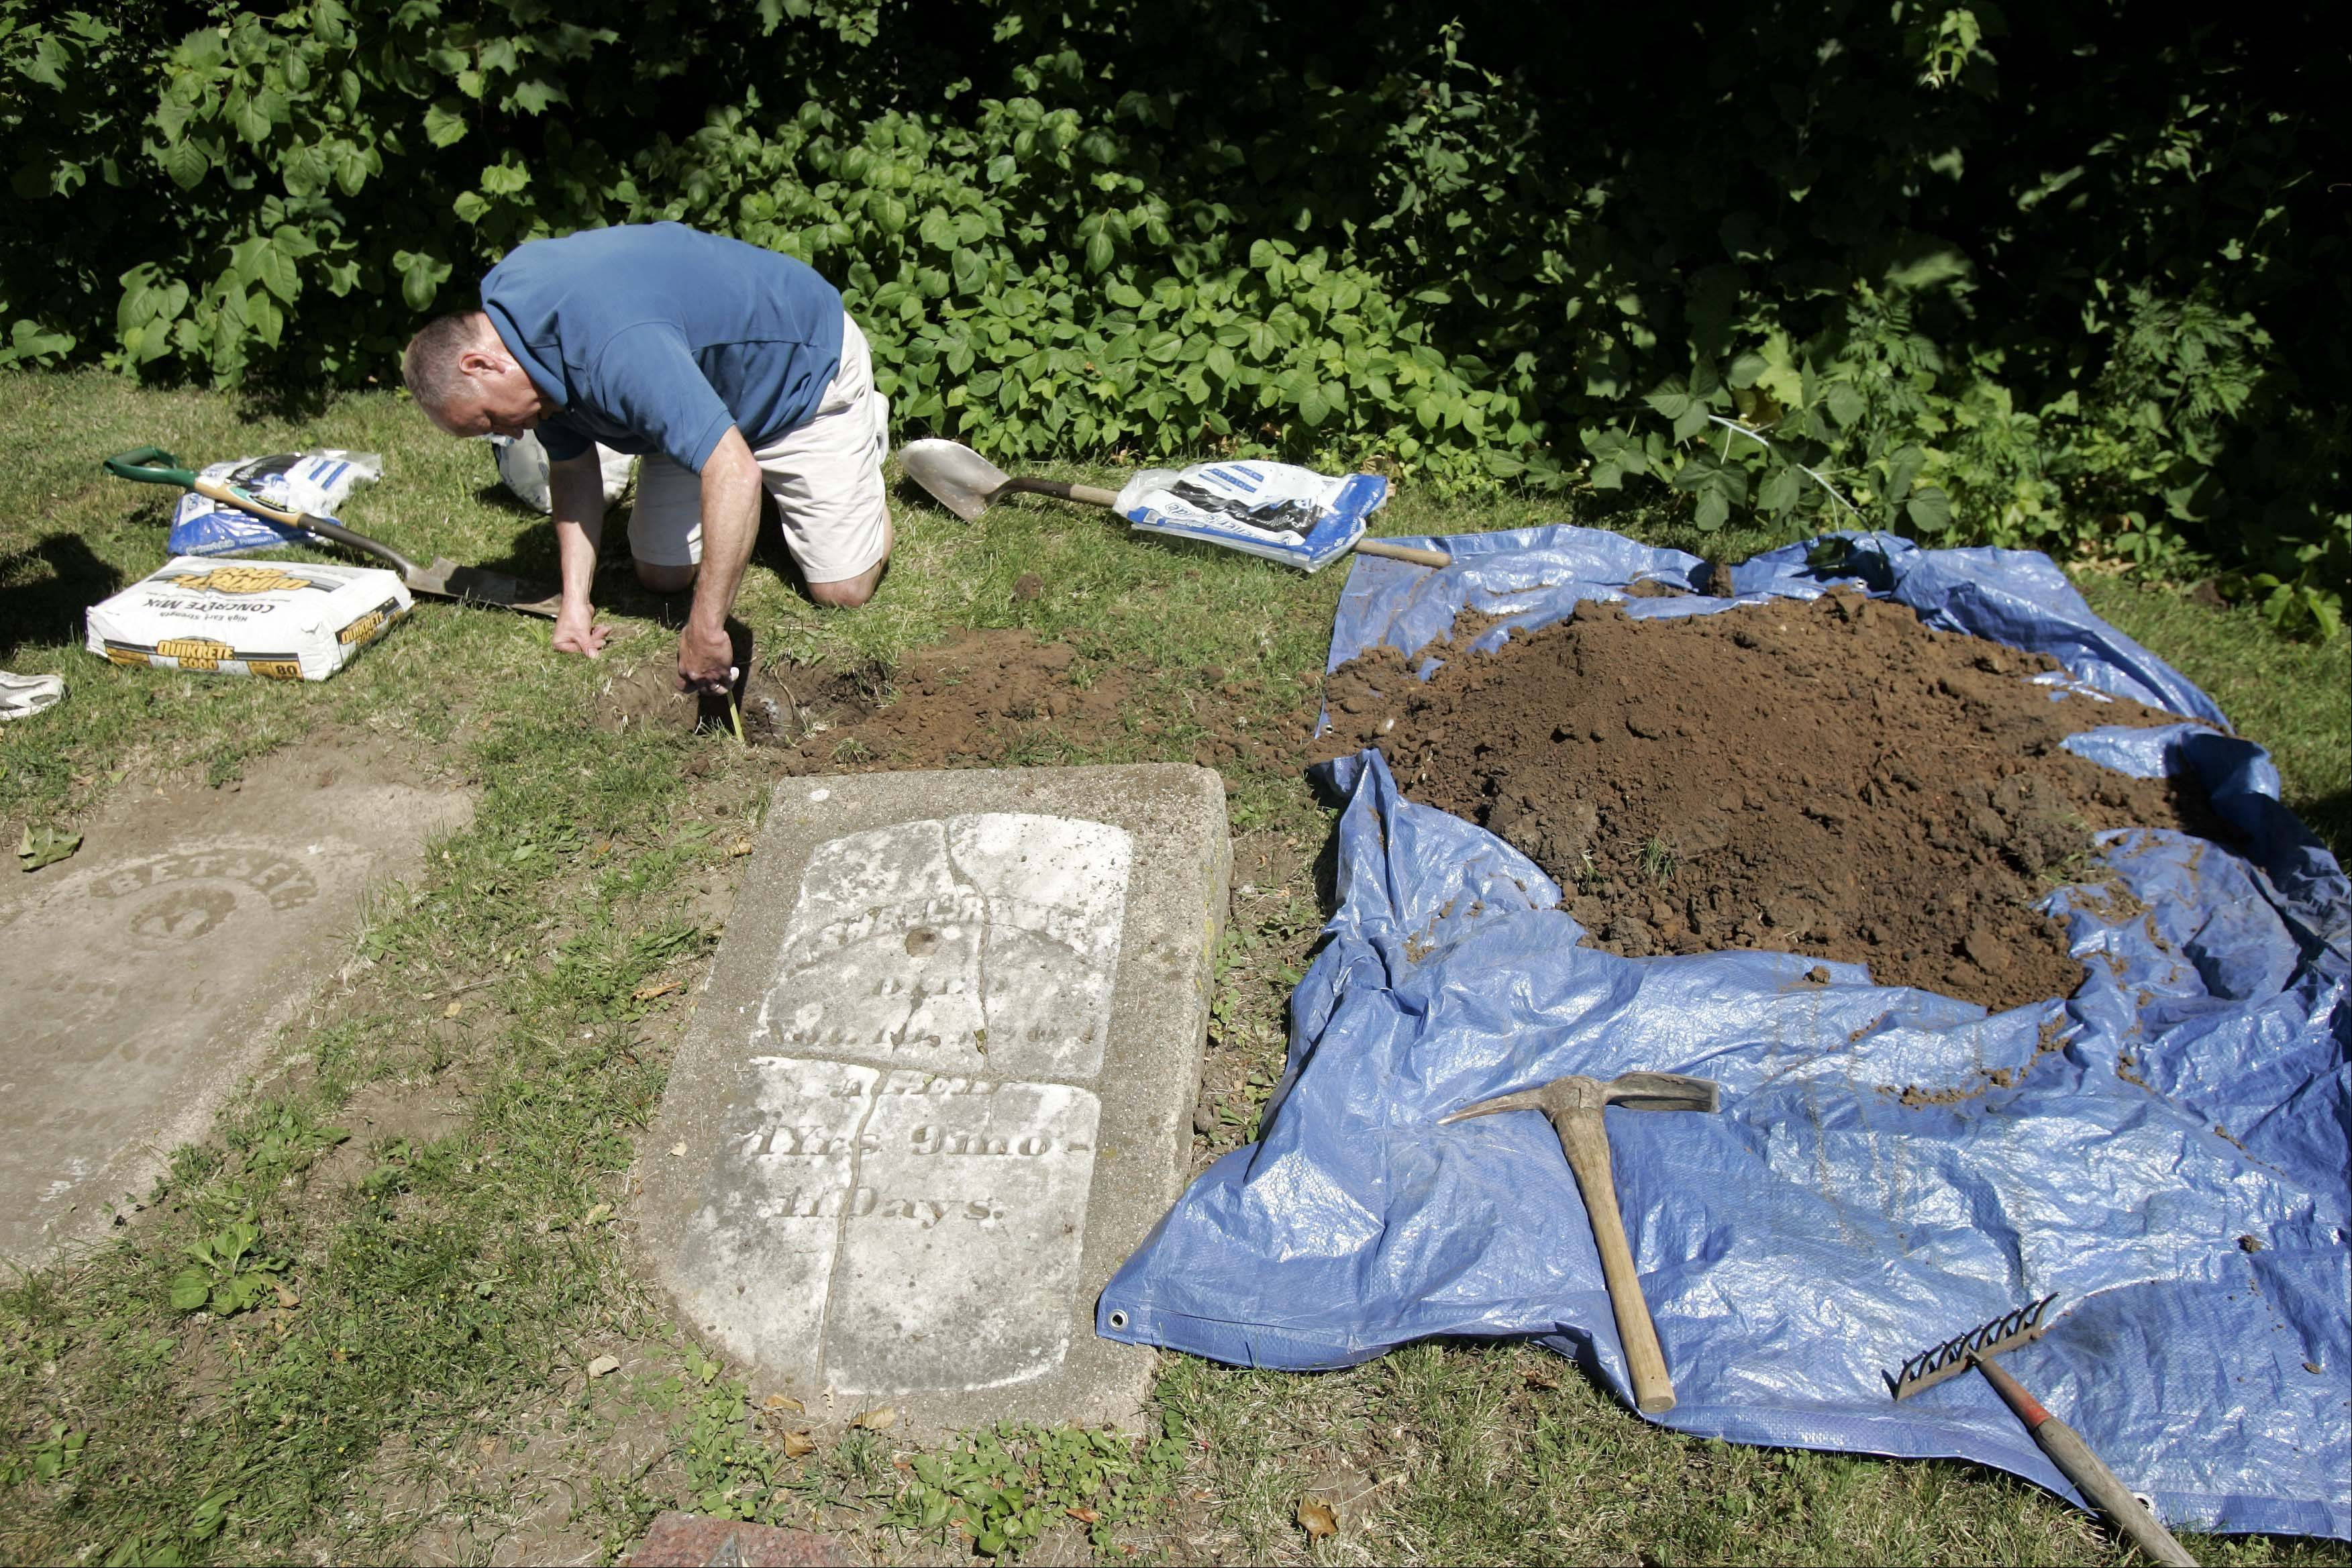 Mike Rowley checks the depth of the hole before installing the new headstone.